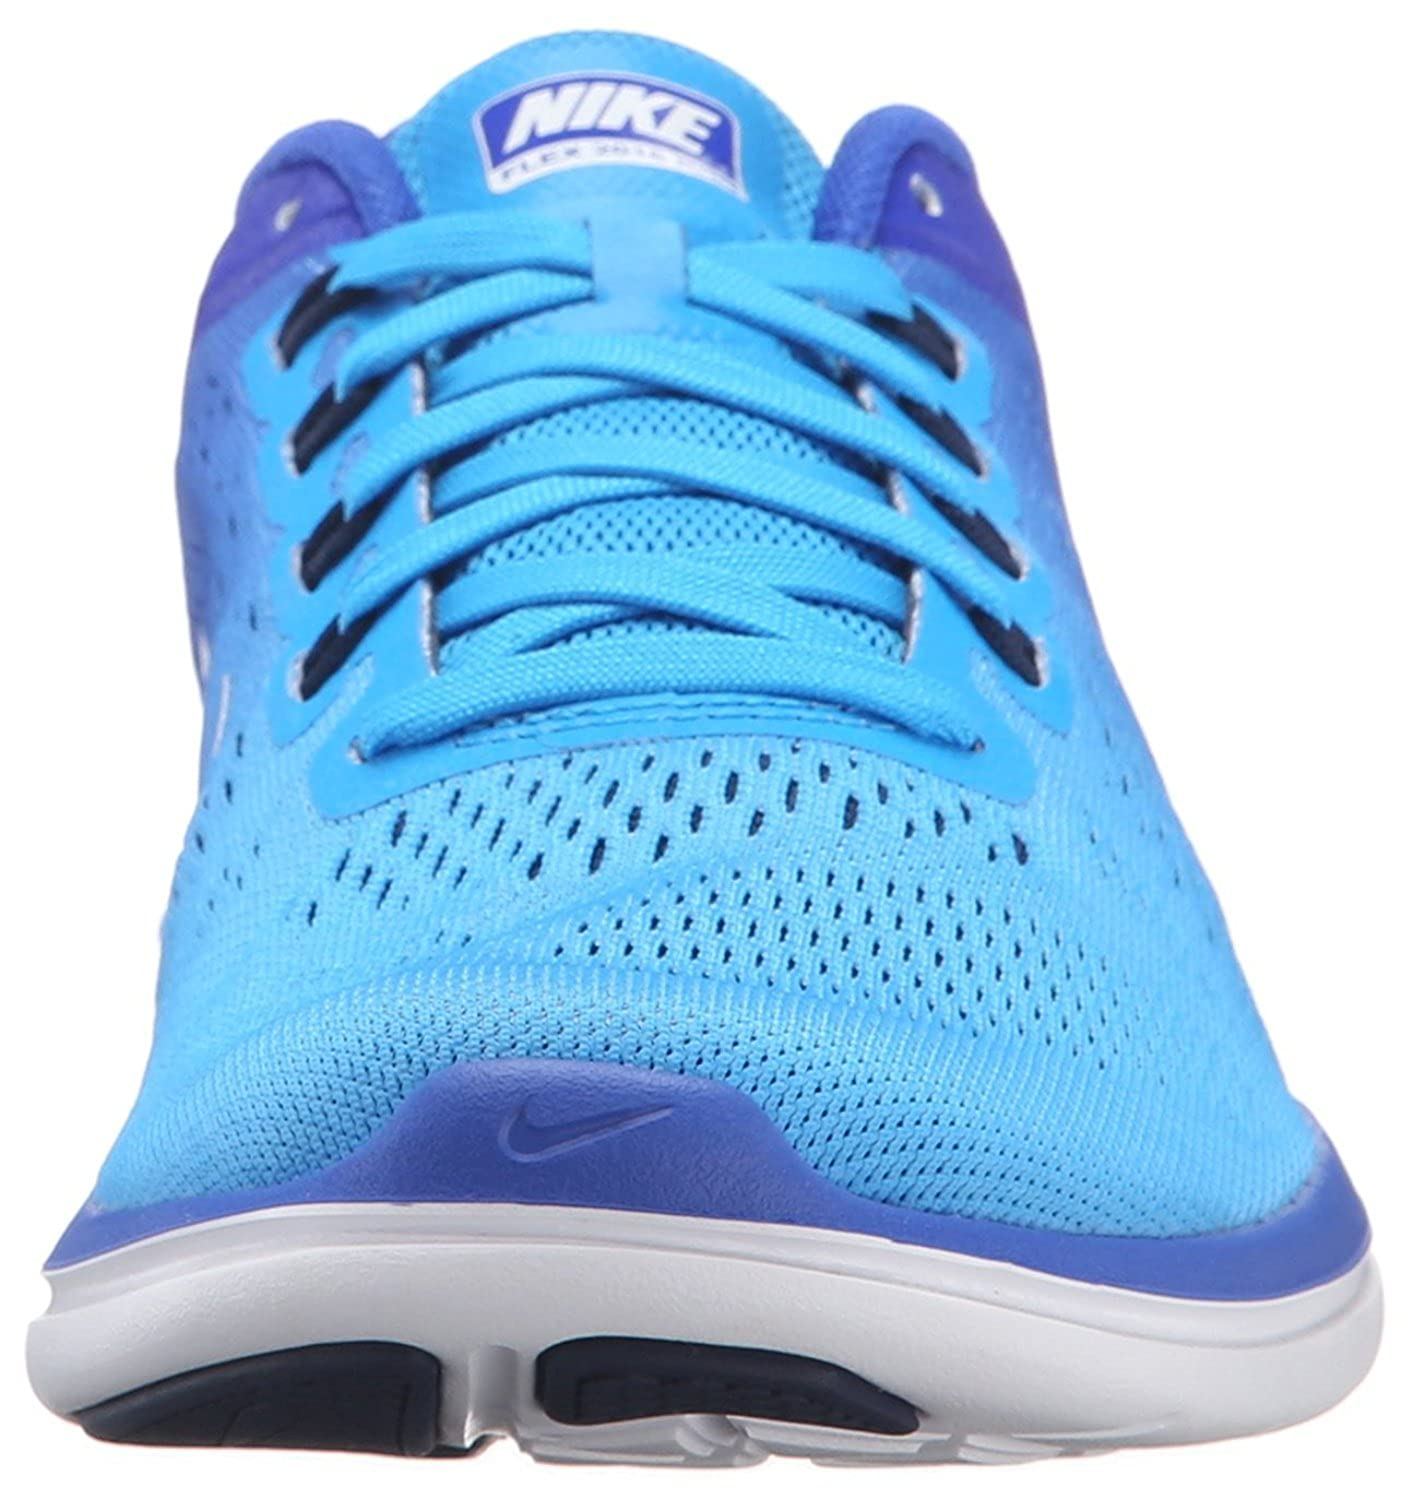 Nike Lady In-Season TR Shoes Fitness Cross-Training Shoes TR B073NHSKDM Road Running 33c5cb